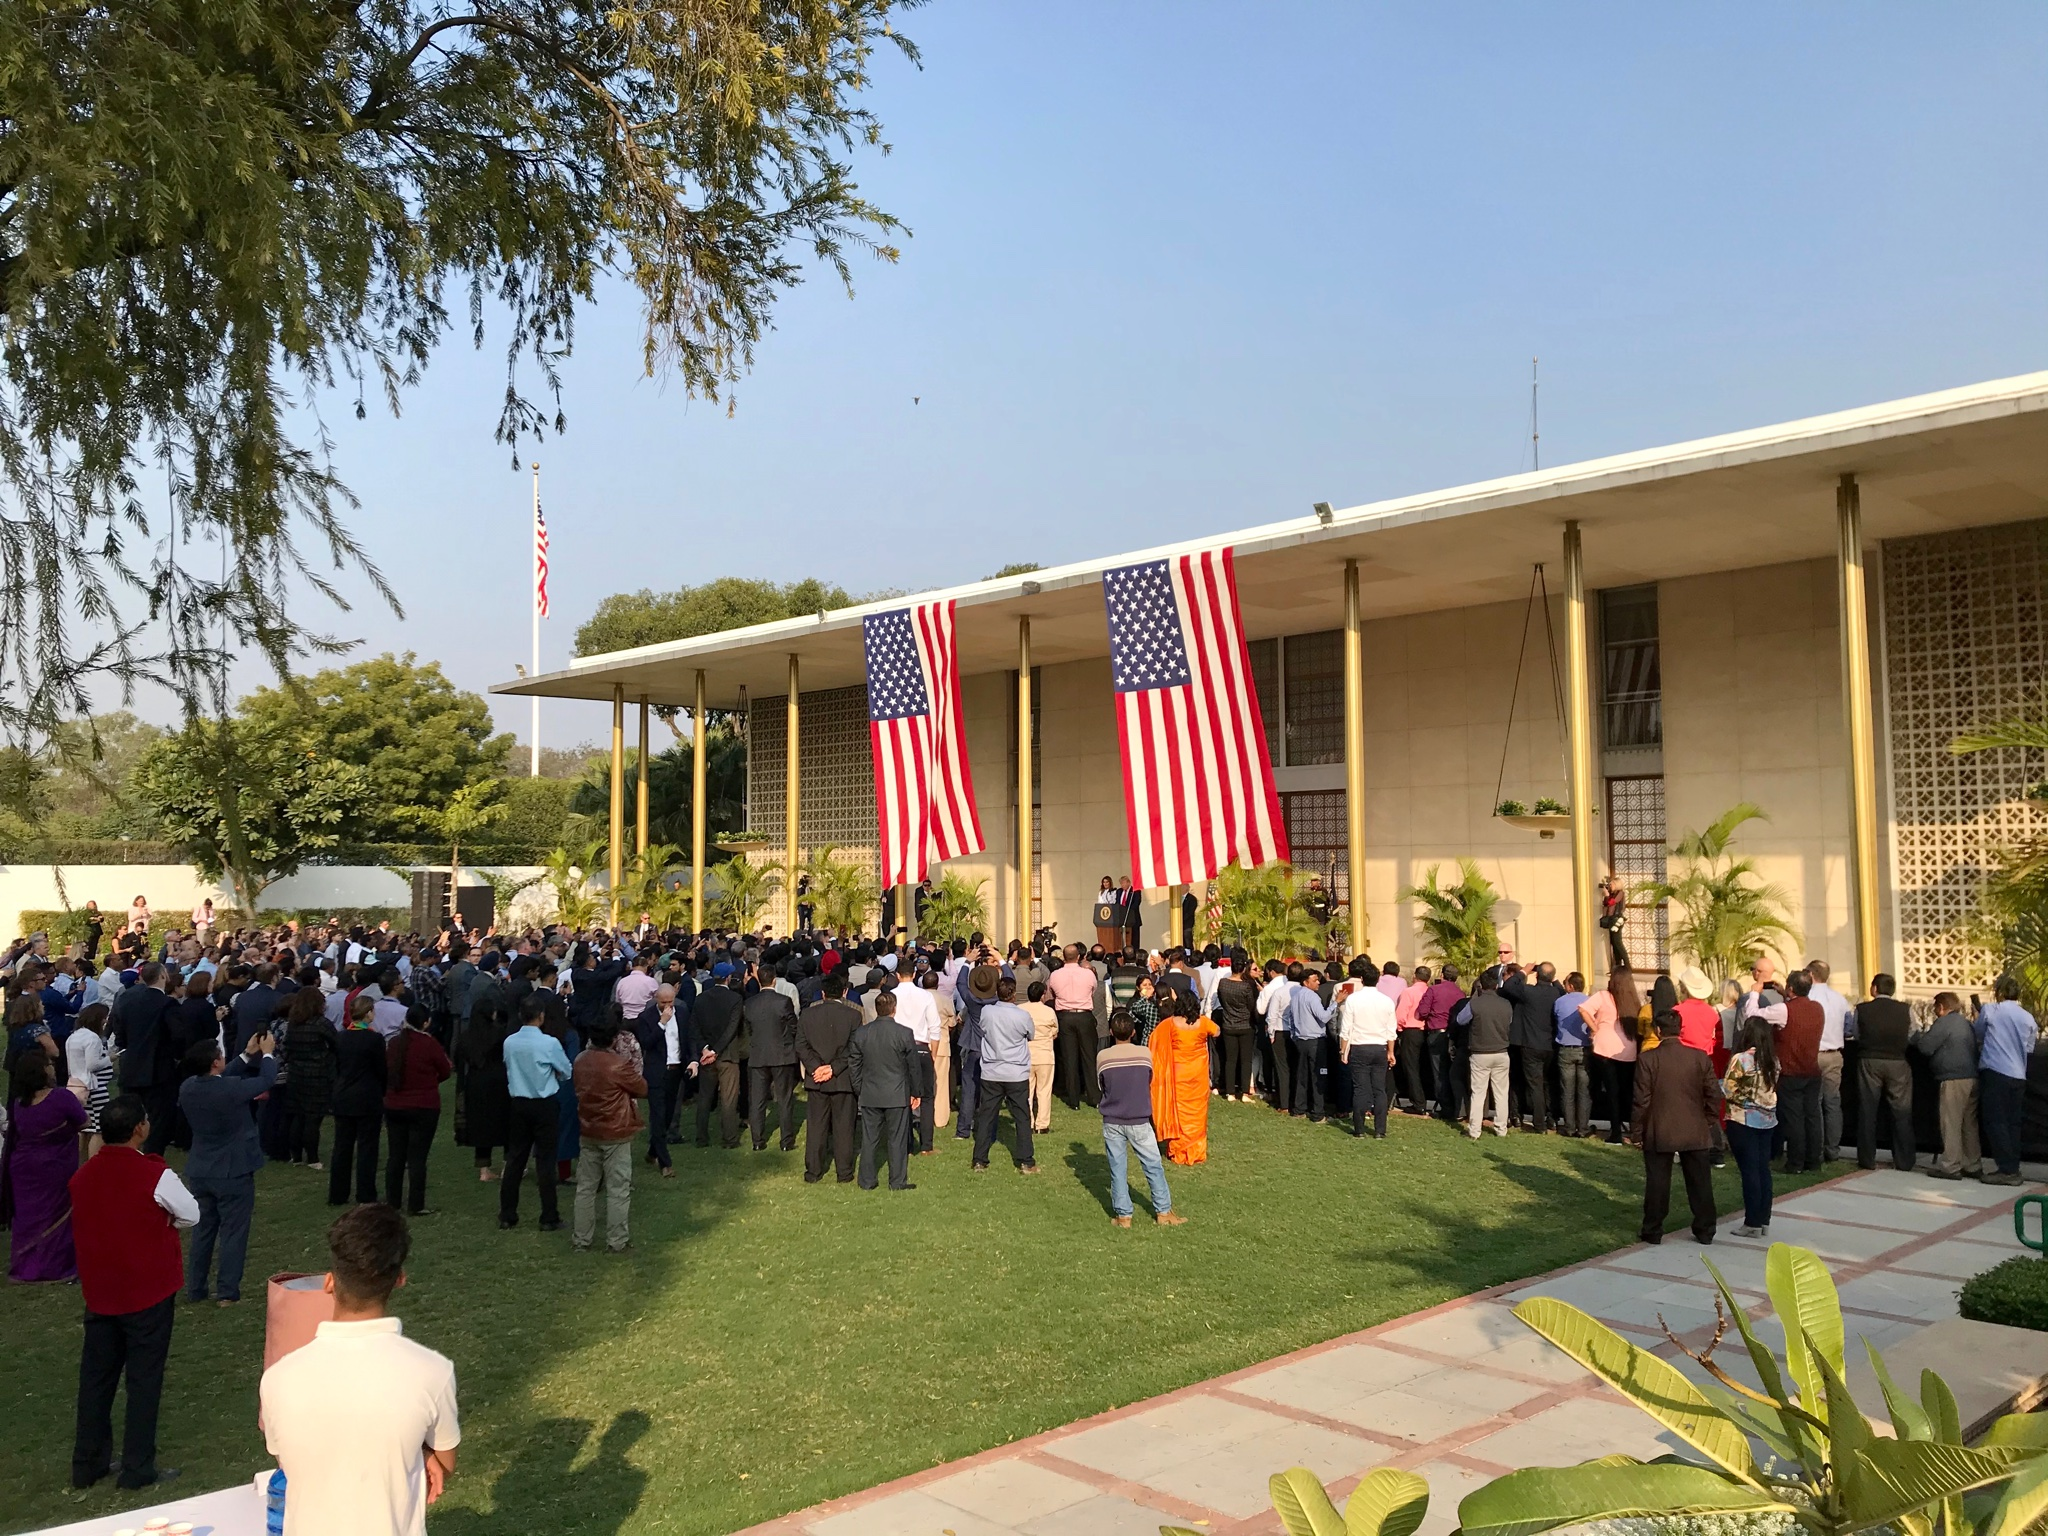 We've seen firsthand that @USAmbIndia and the entire staff @USAndIndia do an amazing job advancing American interests in India. @POTUS and @FLOTUS thanked them today in Delhi for helping make this trip a success. We appreciate all they and their families do for our country! https://t.co/Wn49Ucfubg